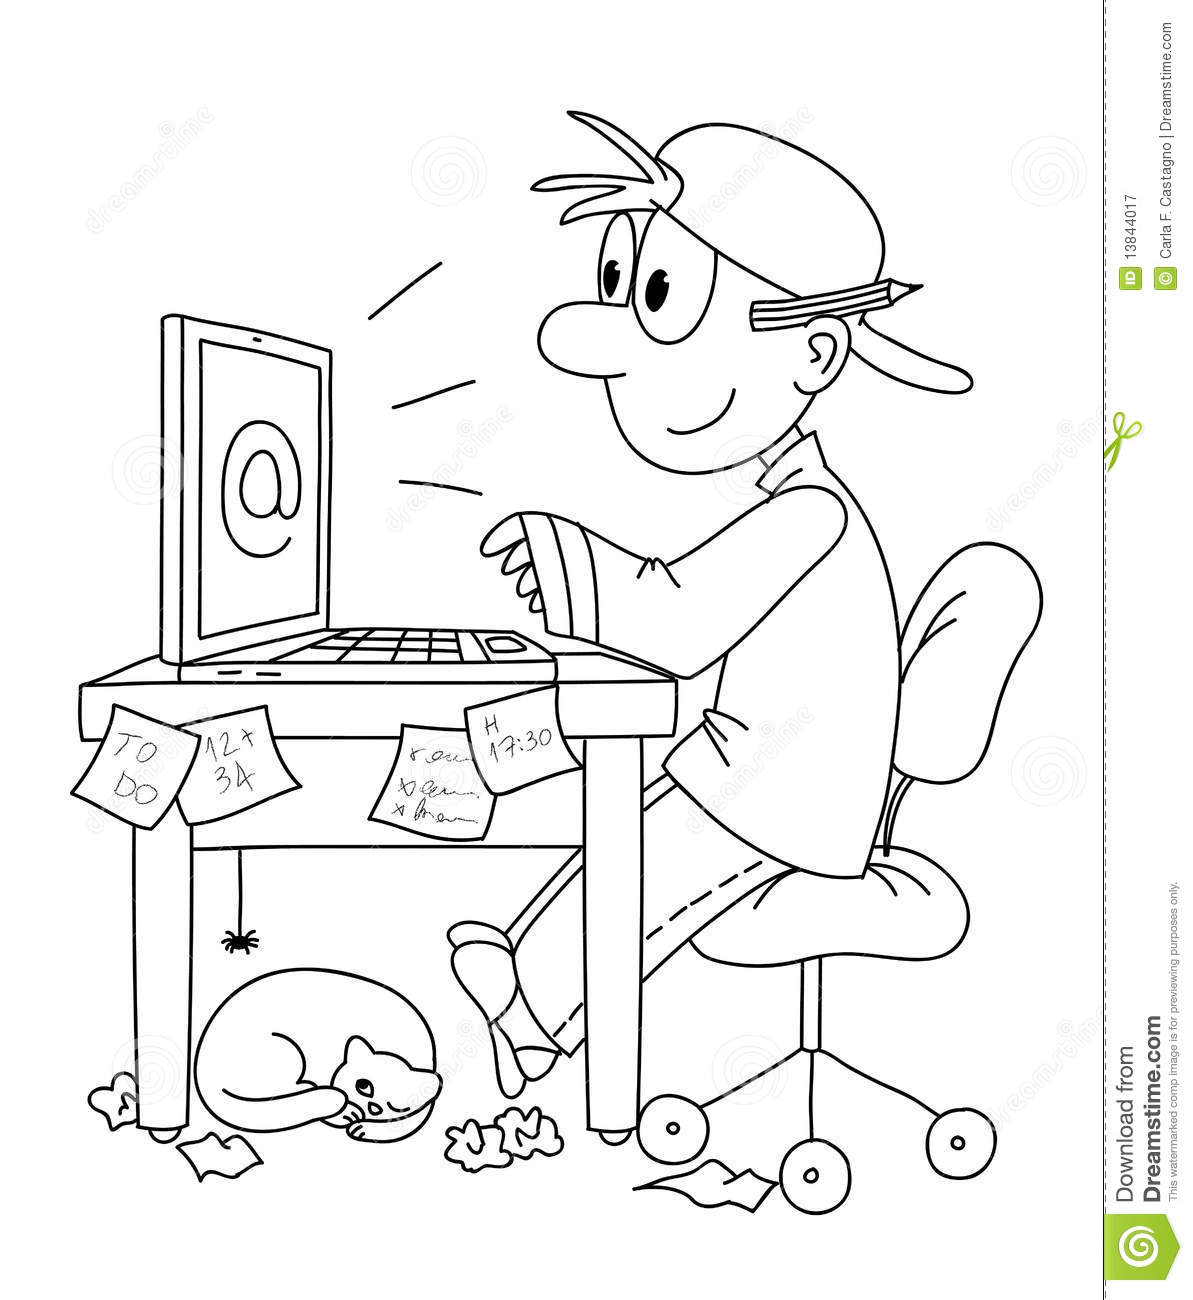 work on computer royalty free stock photography